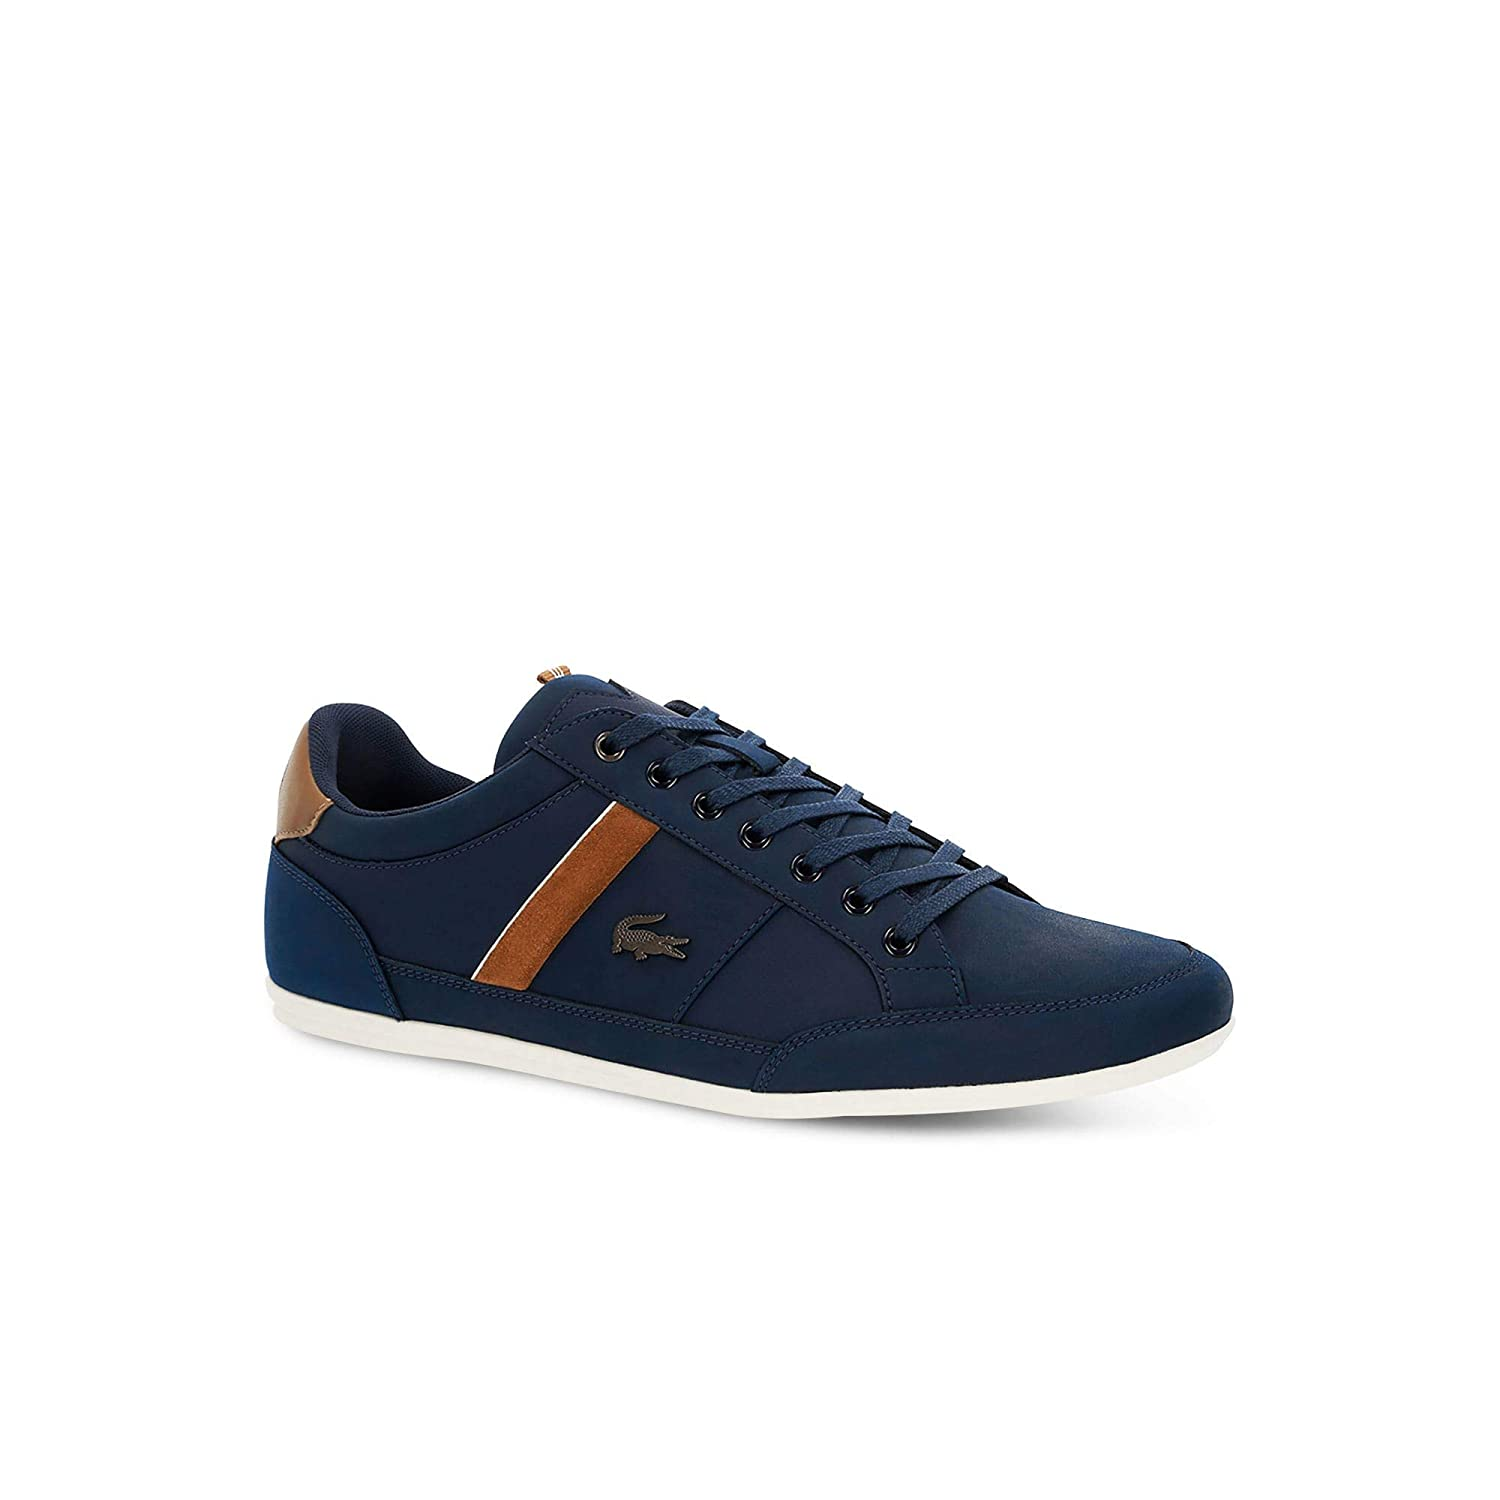 Lacoste - Chaussures Homme Sportswear - 37CMA0008